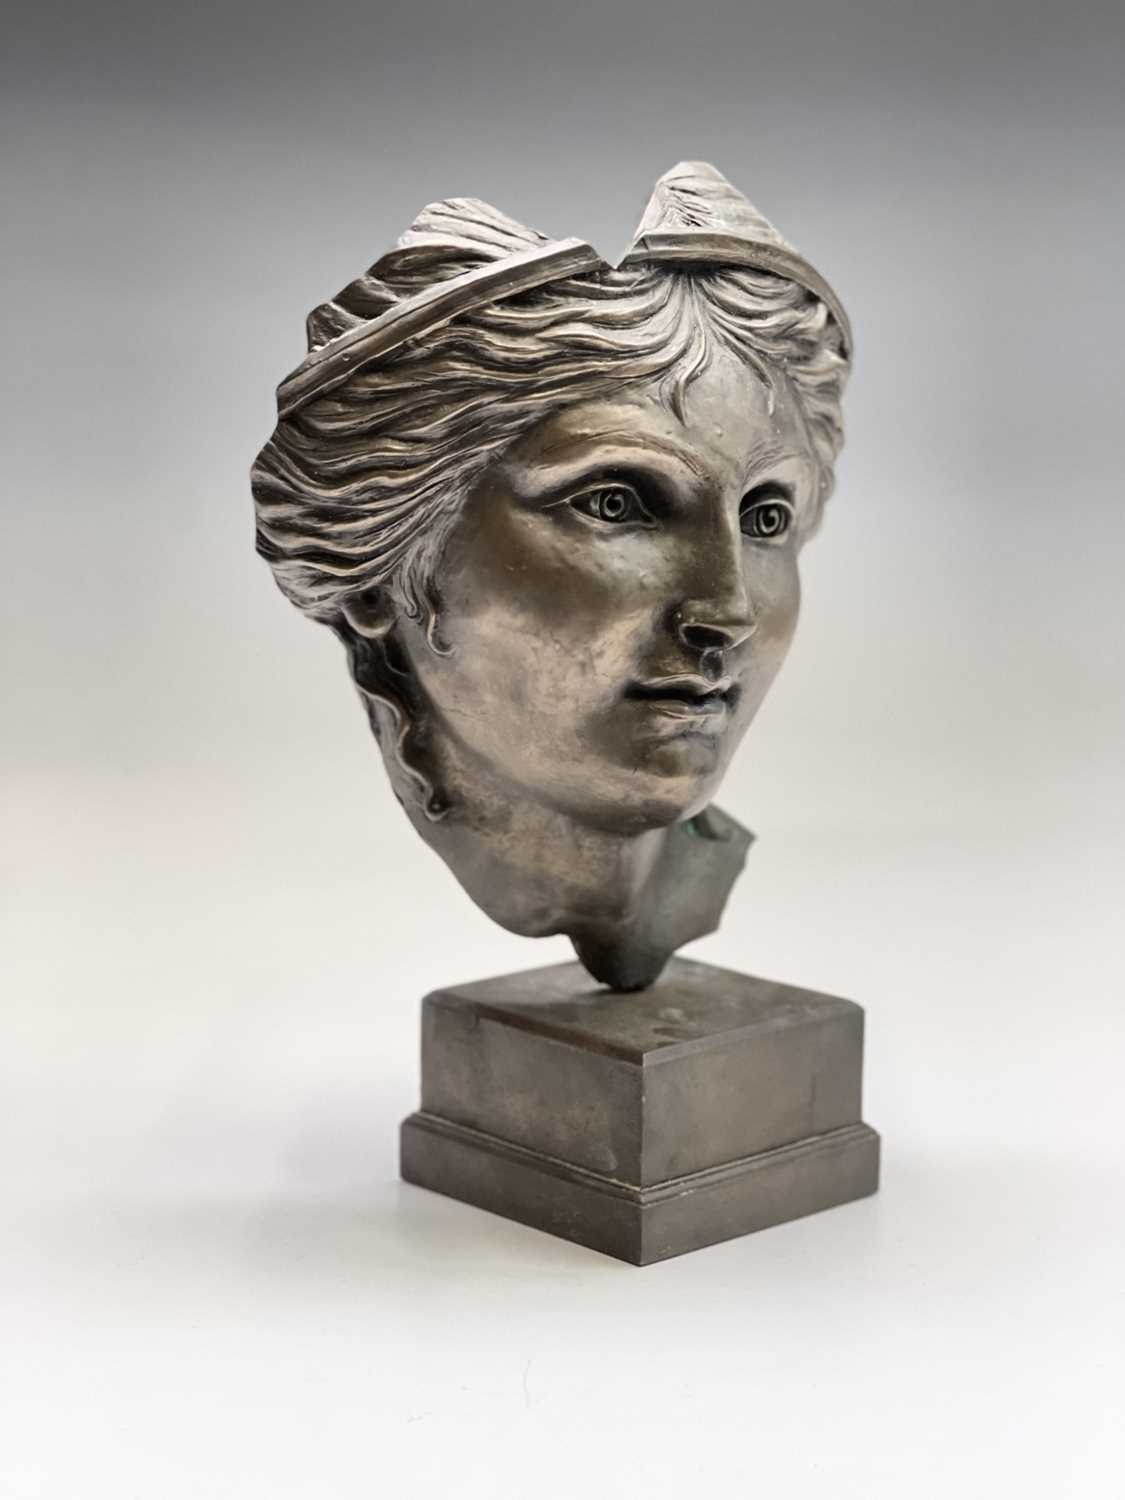 Alec WILES (1924)Aphrodite Bronzed resin mask and plinth Height 35cm - Image 3 of 8